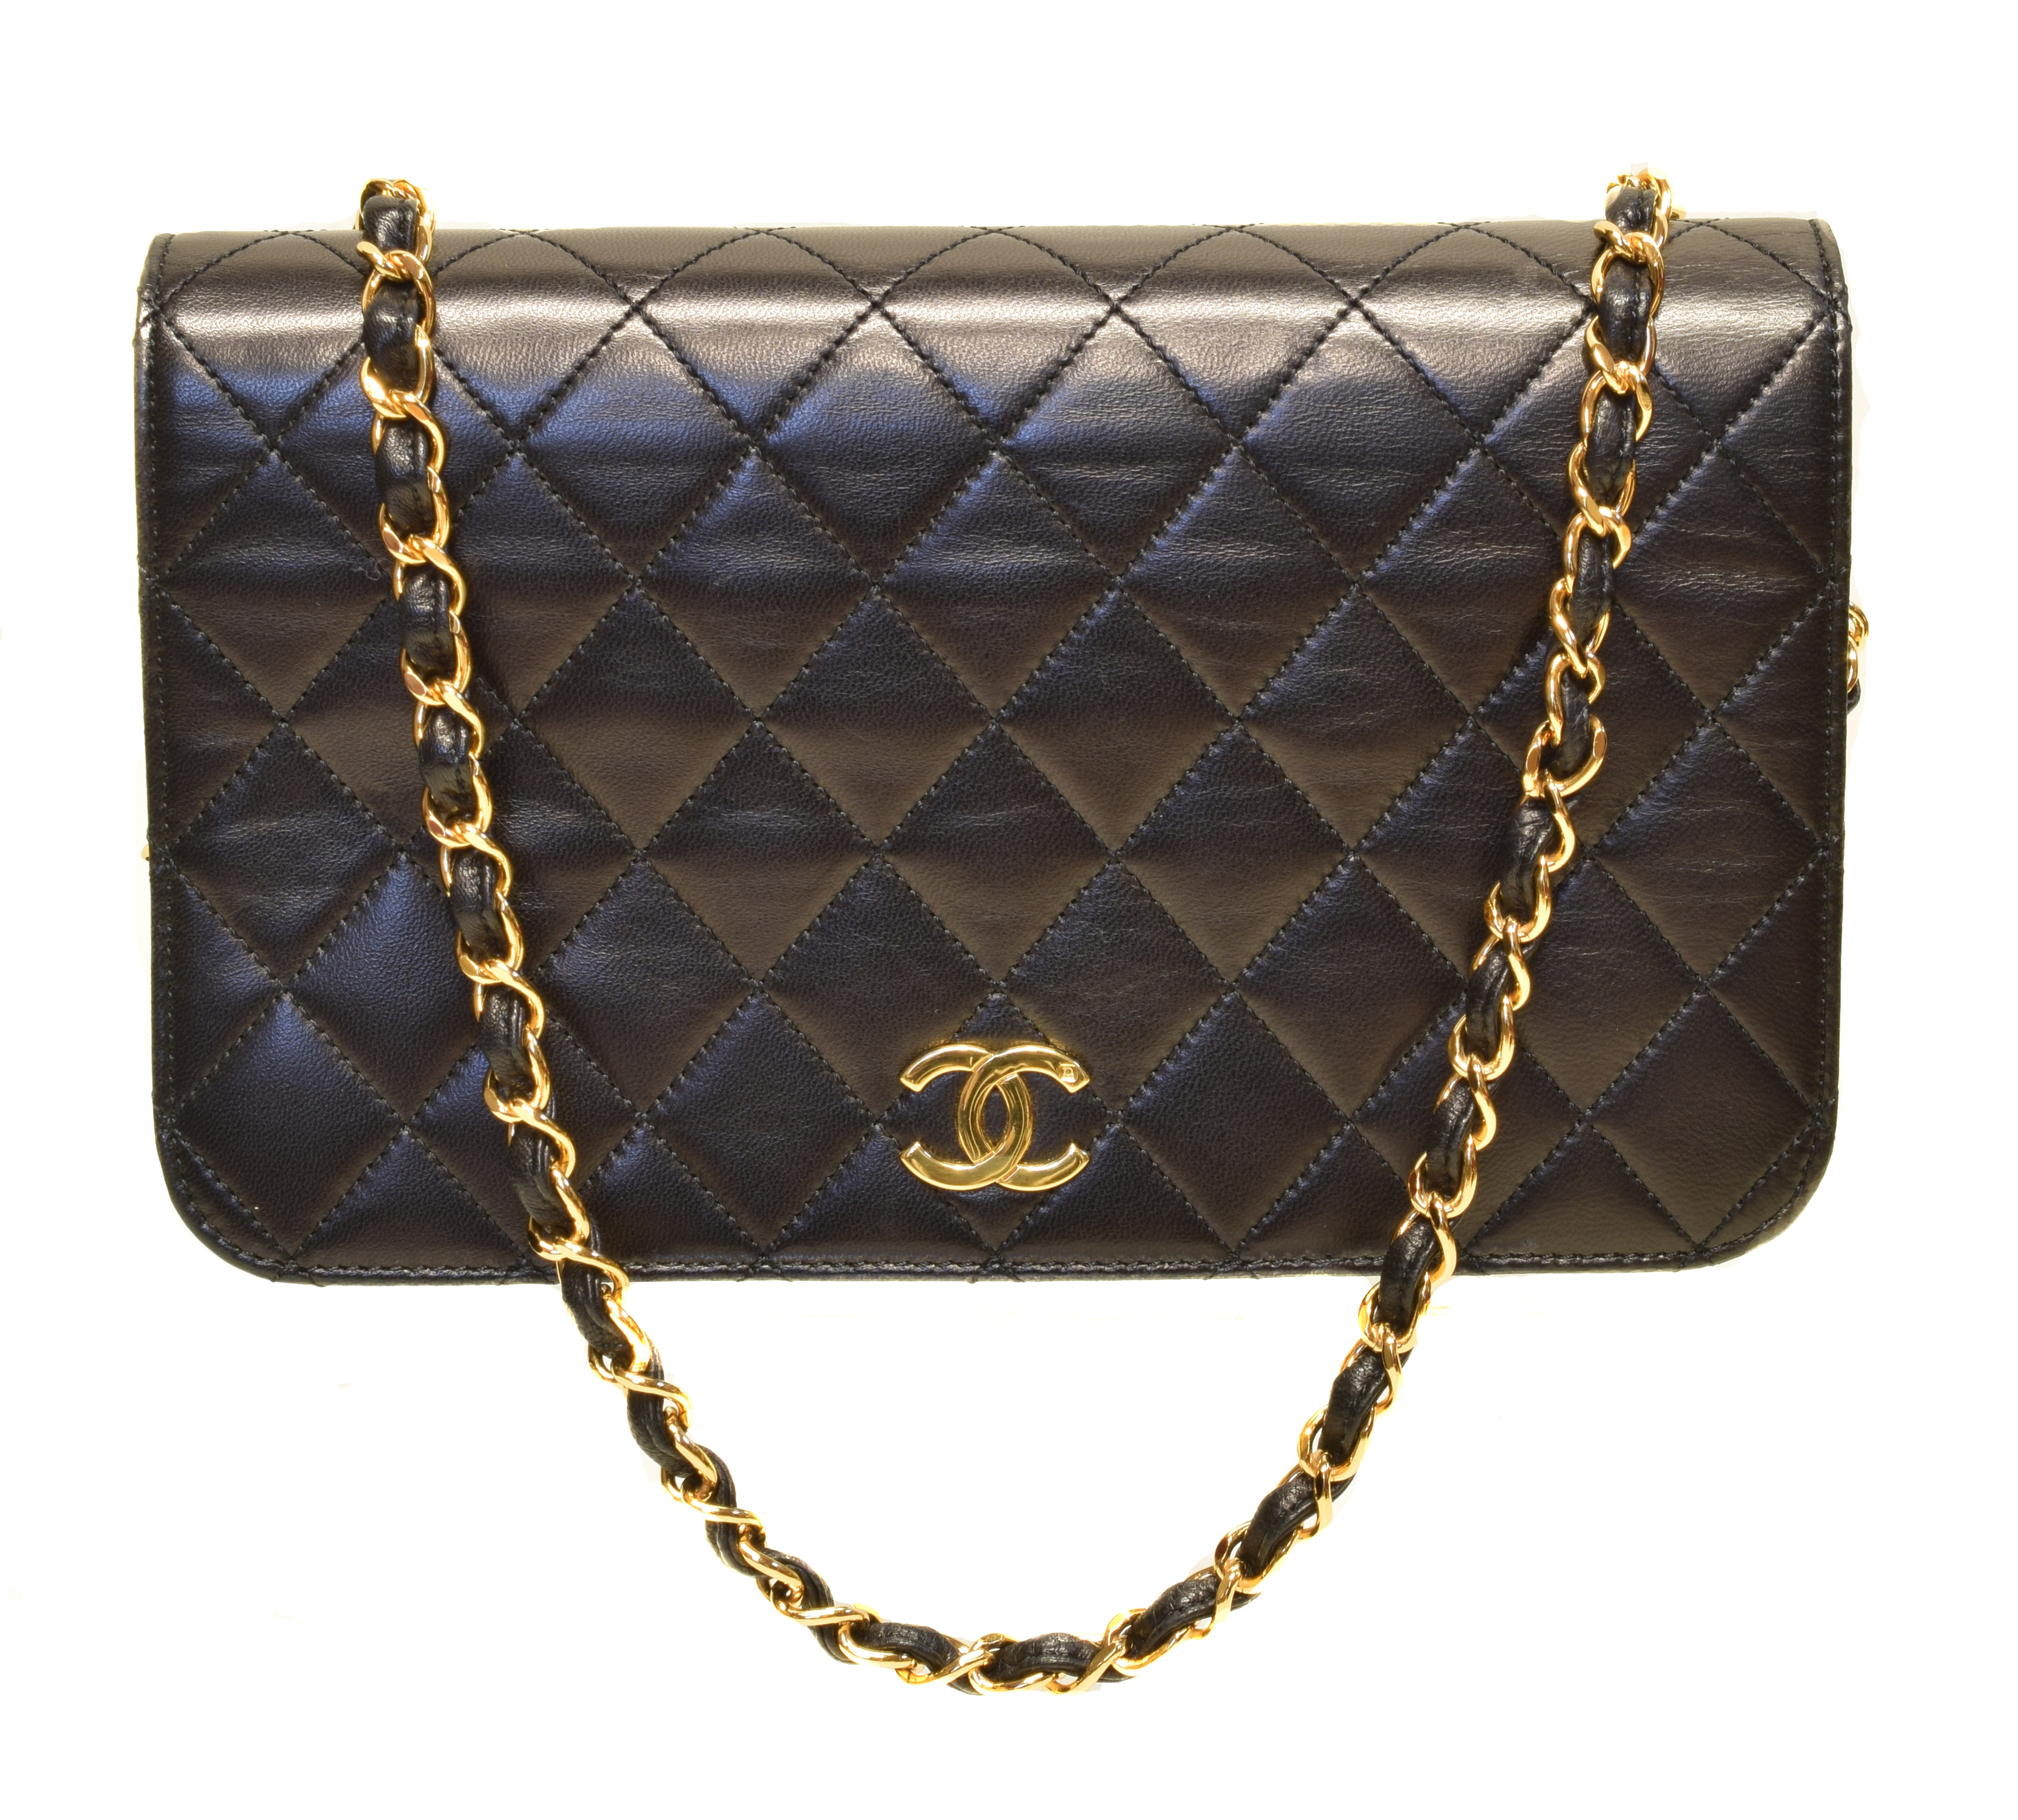 A Chanel Mademoiselle Timeless Full Flap Shoulder Bag, circa 1997-9, the black quilted calf leather exterior with interlaced chain straps and gold tone hardware, serial no. 5145297. With maker's dustbag, card, and box.  (Qty: 1)  23x15x5cm  Sold for £1,952